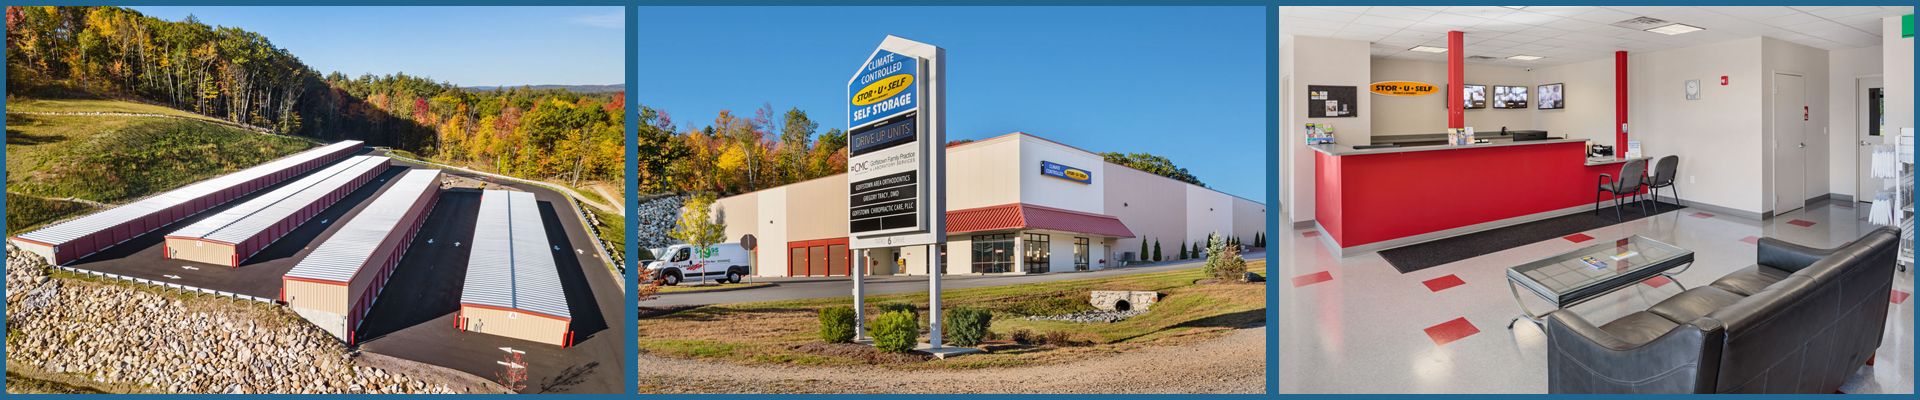 goffstown storage